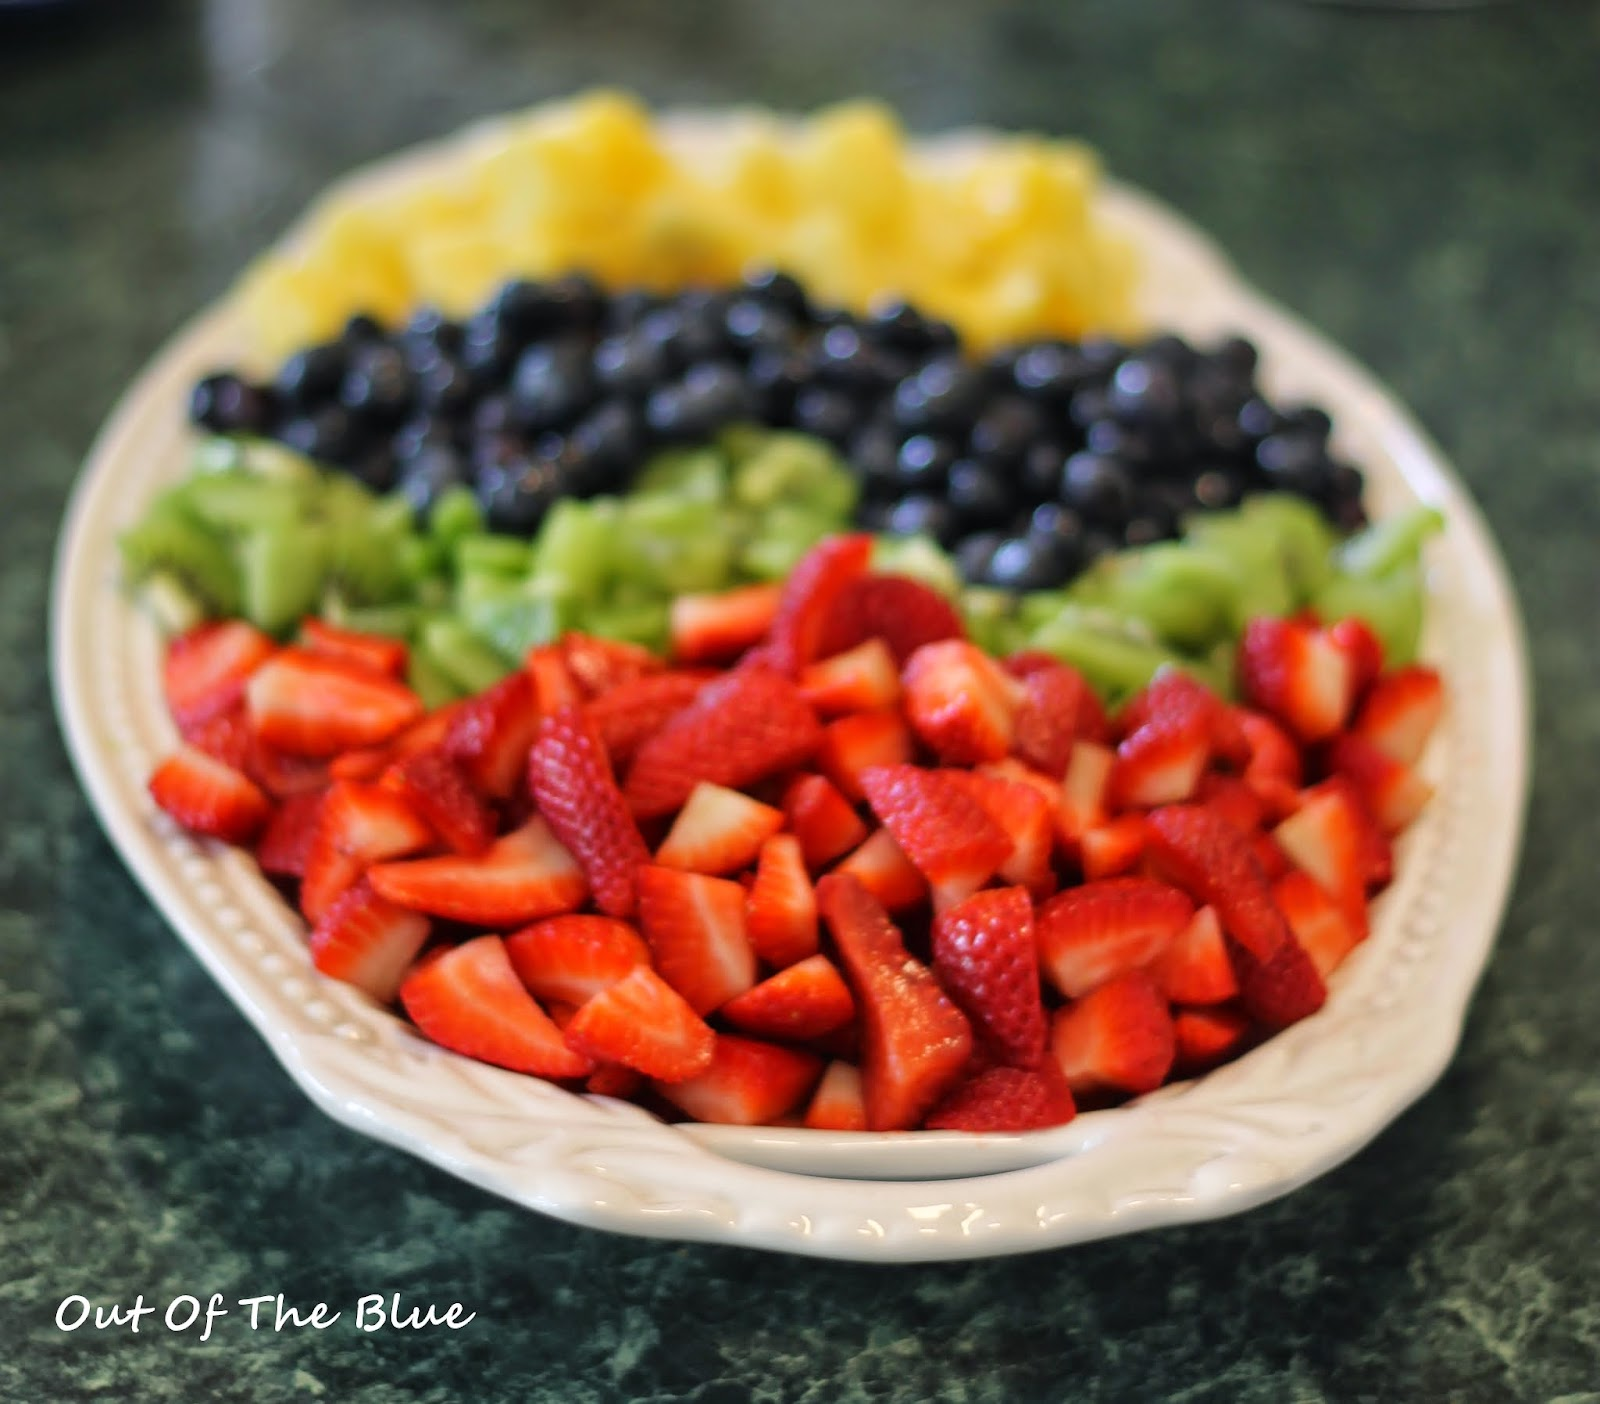 Recipes From Out Of The Blue: Easter Egg Fruit Salad